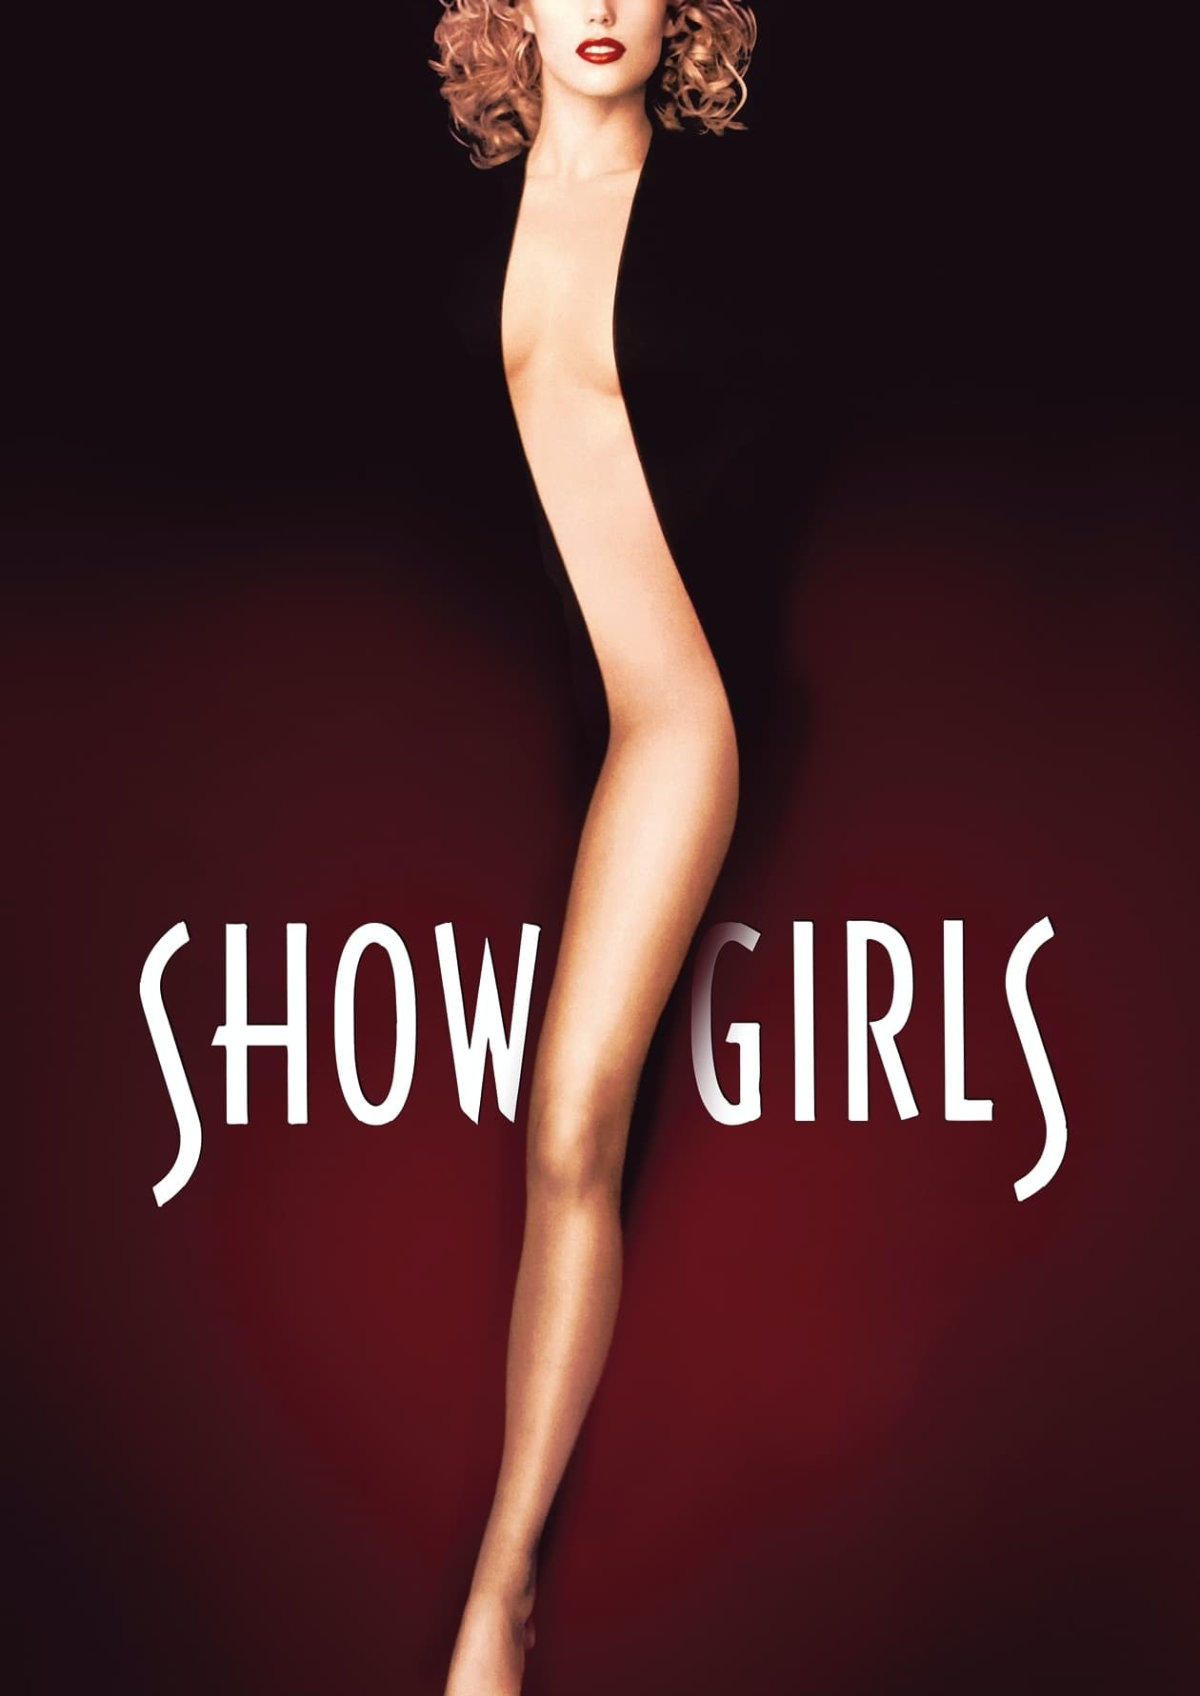 'Showgirls' movie poster